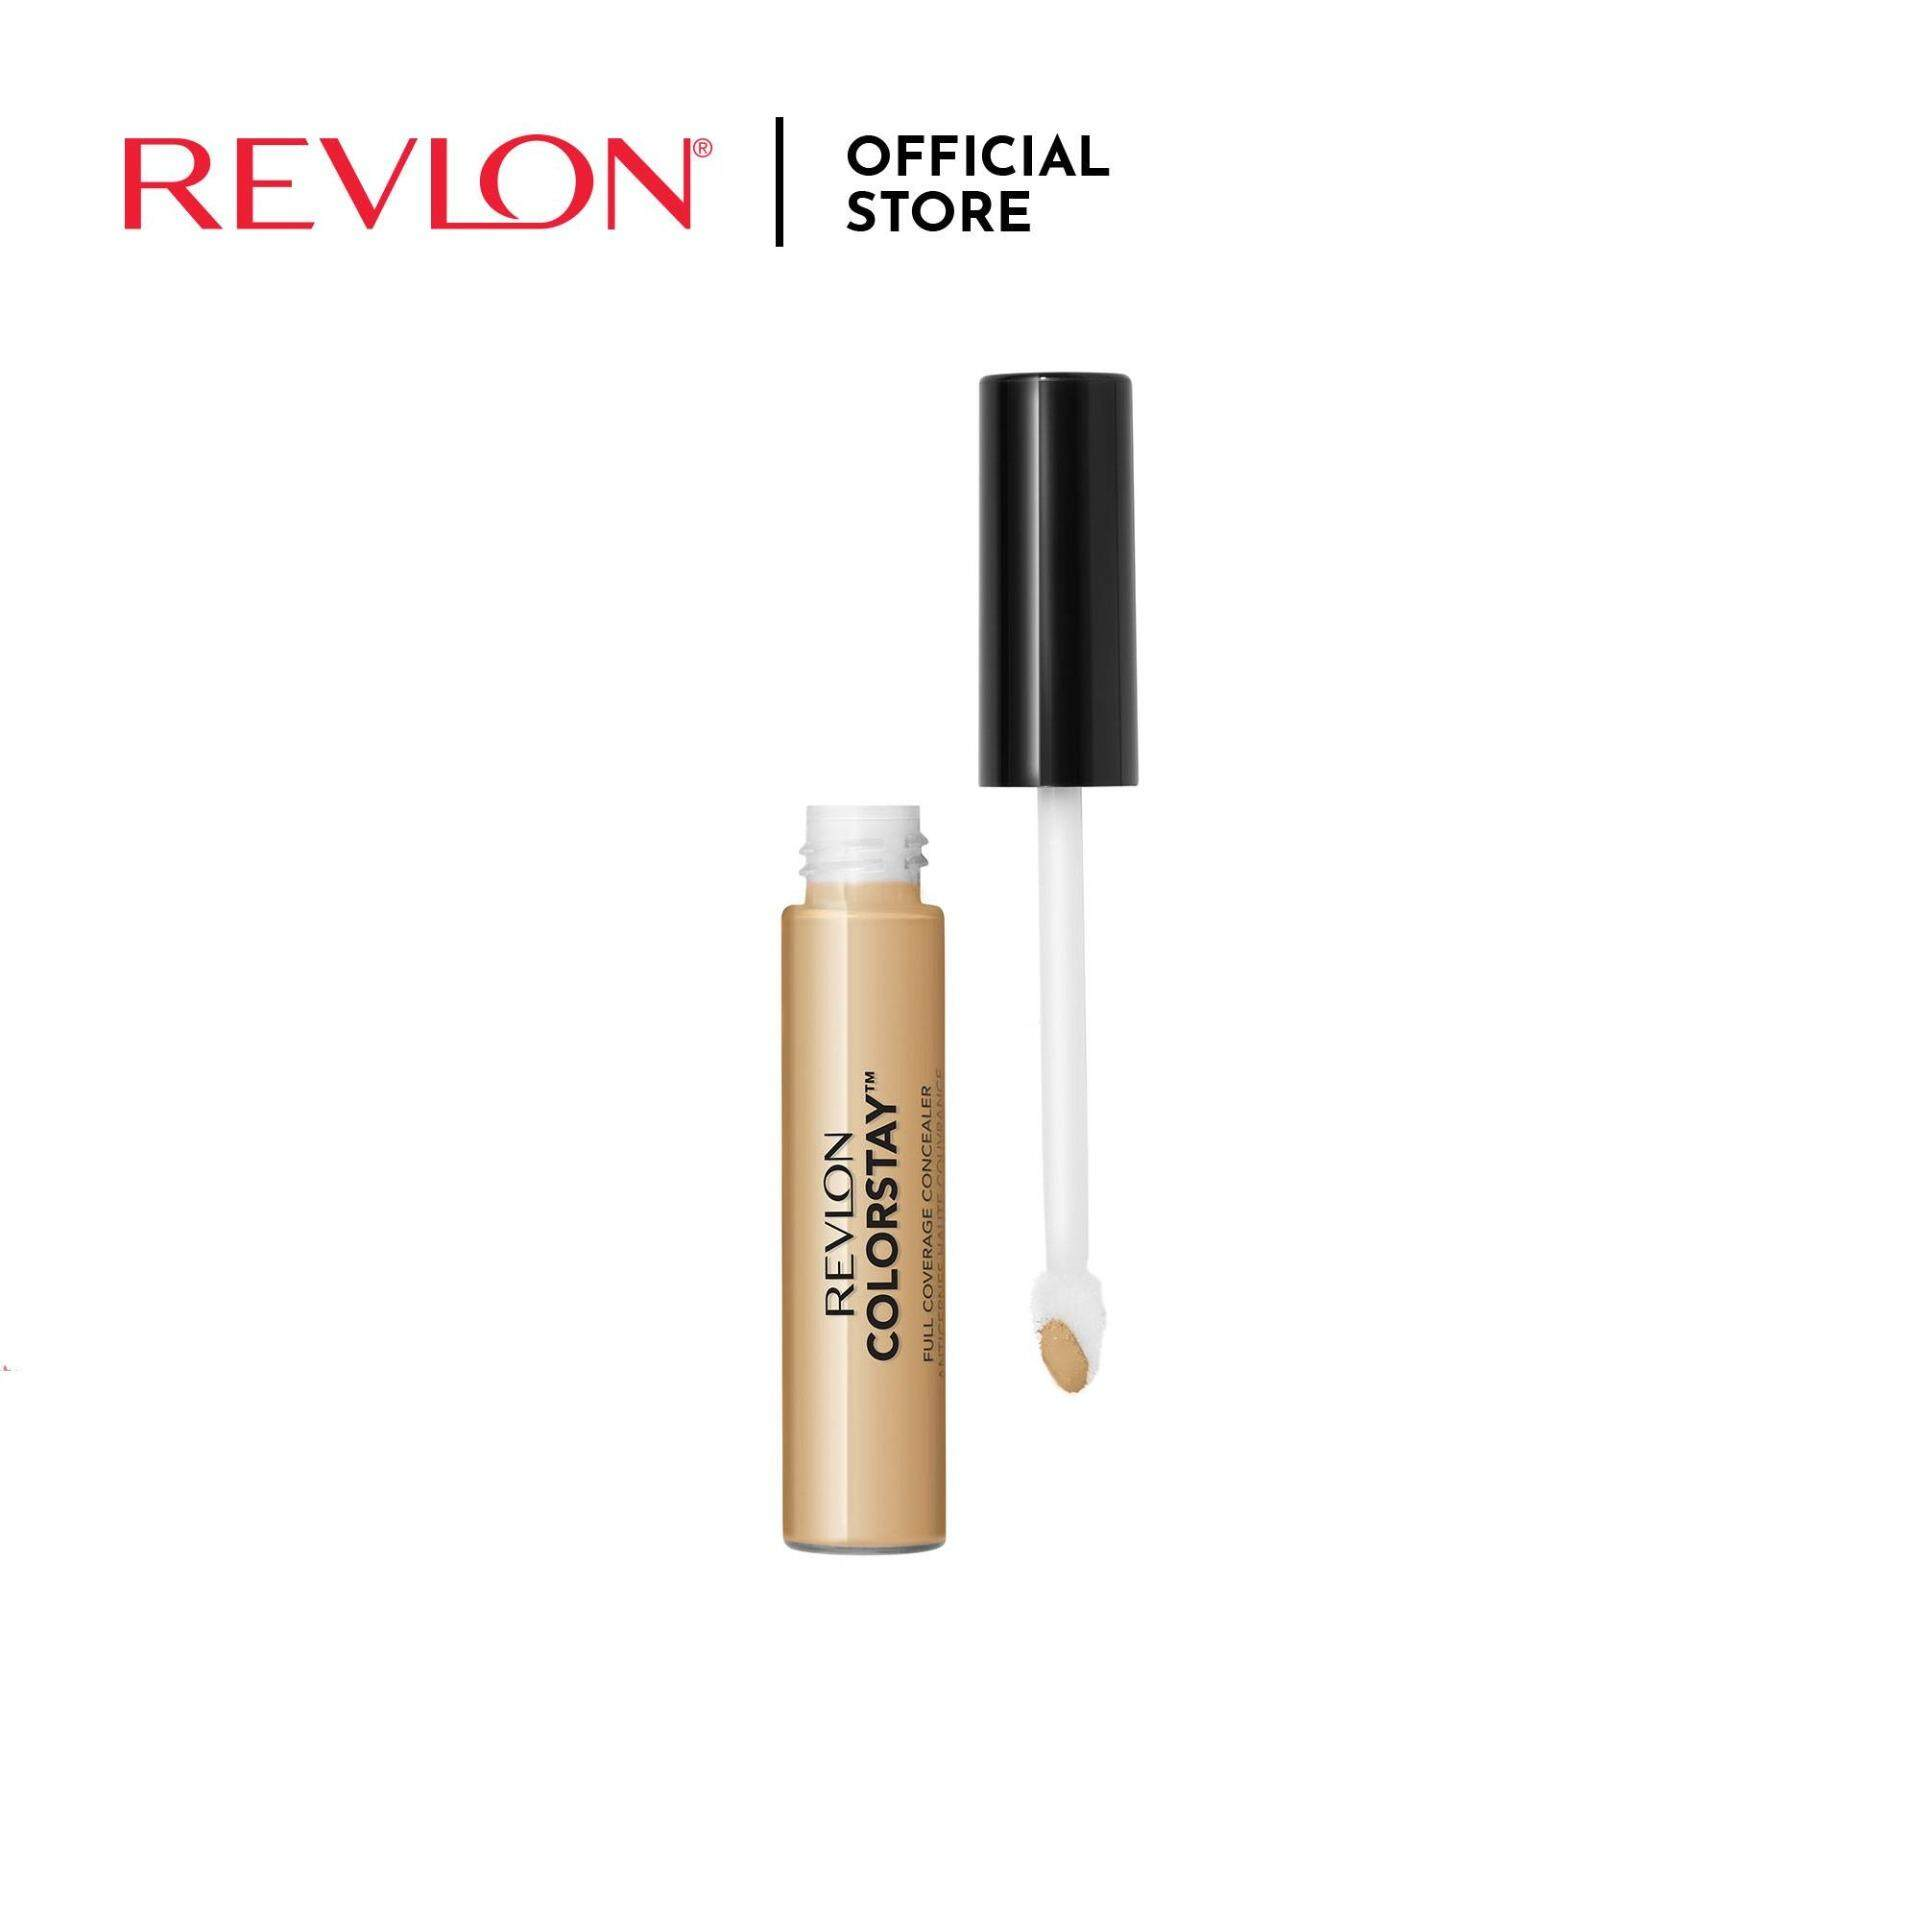 Revlon Colorstay Concealer -Light Medium 03